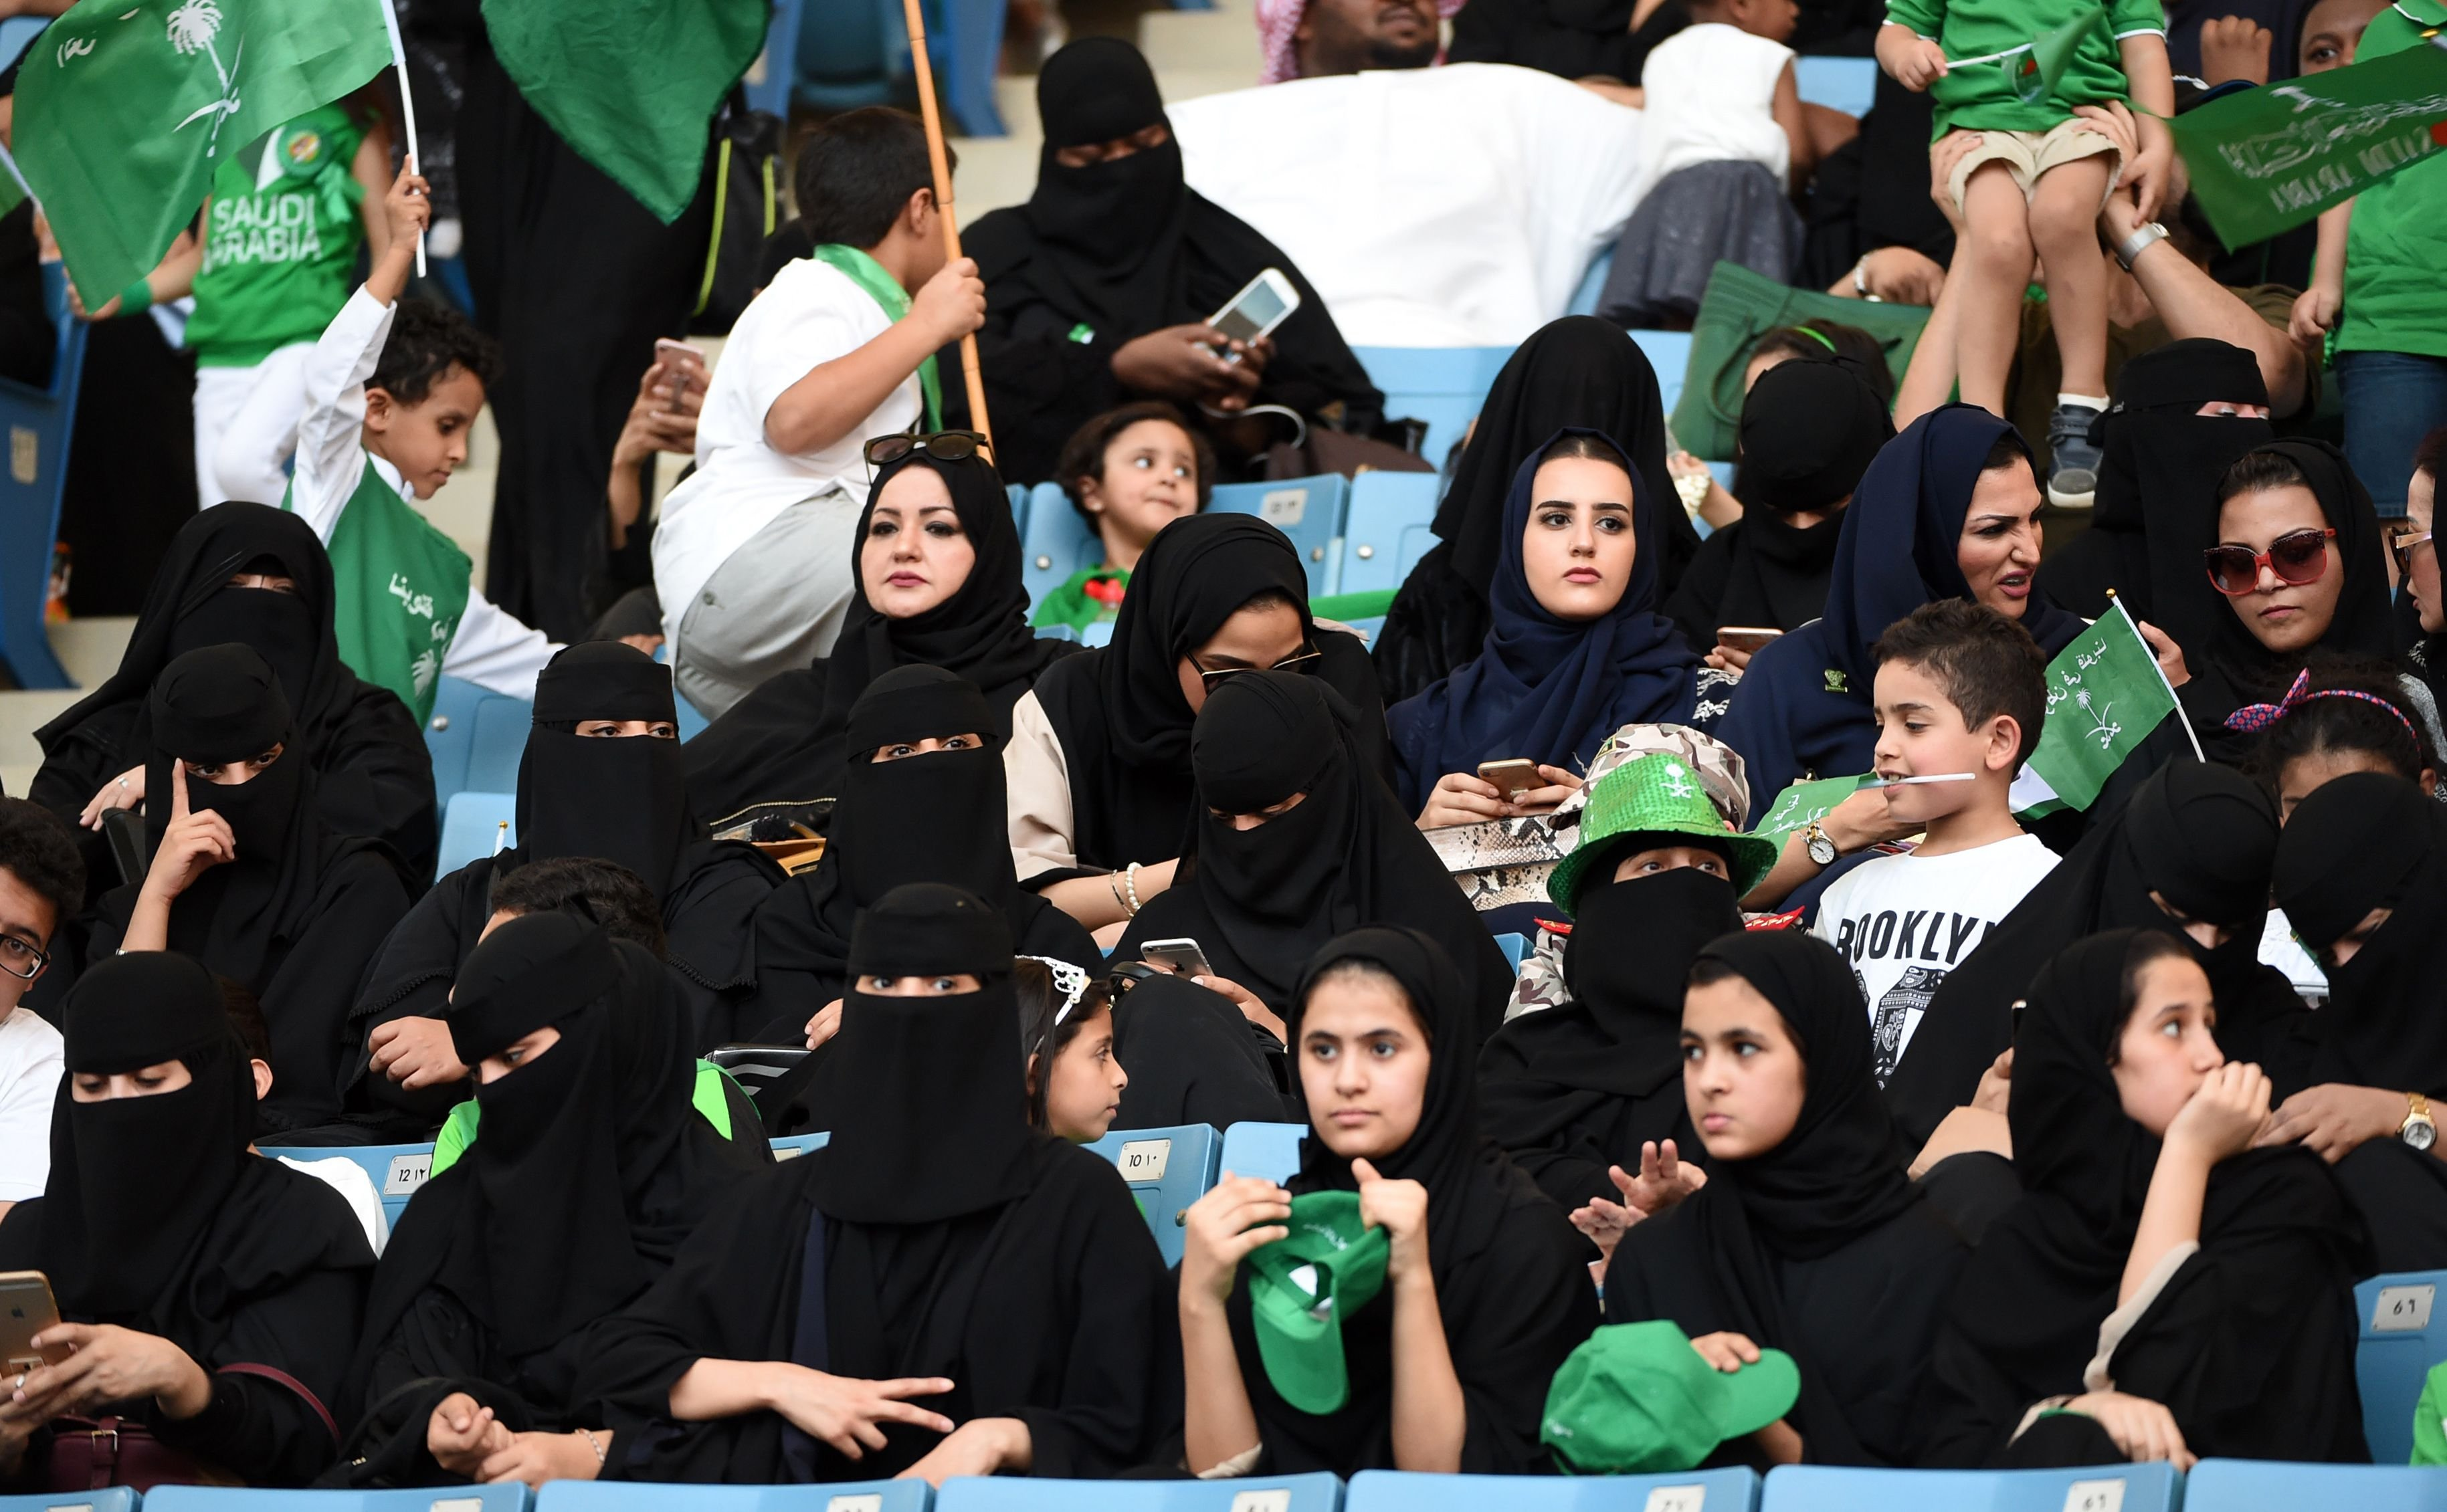 Saudi Arabia Backlash After Women Celebrate National Day Bbc News